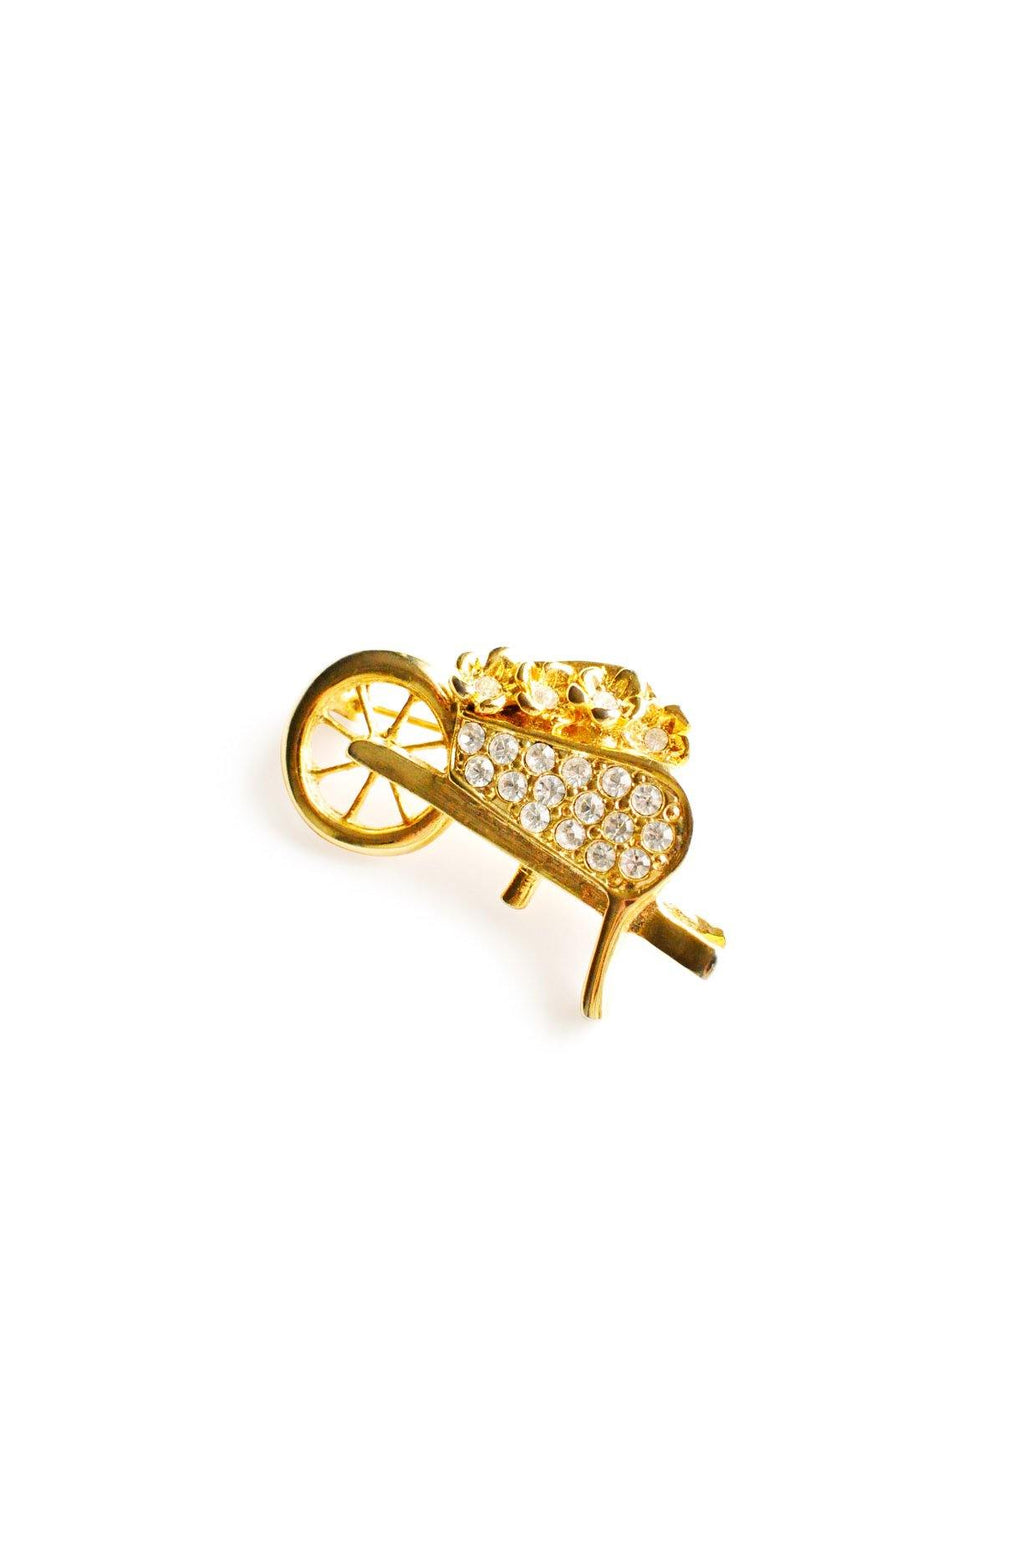 Wheelbarrow Brooch